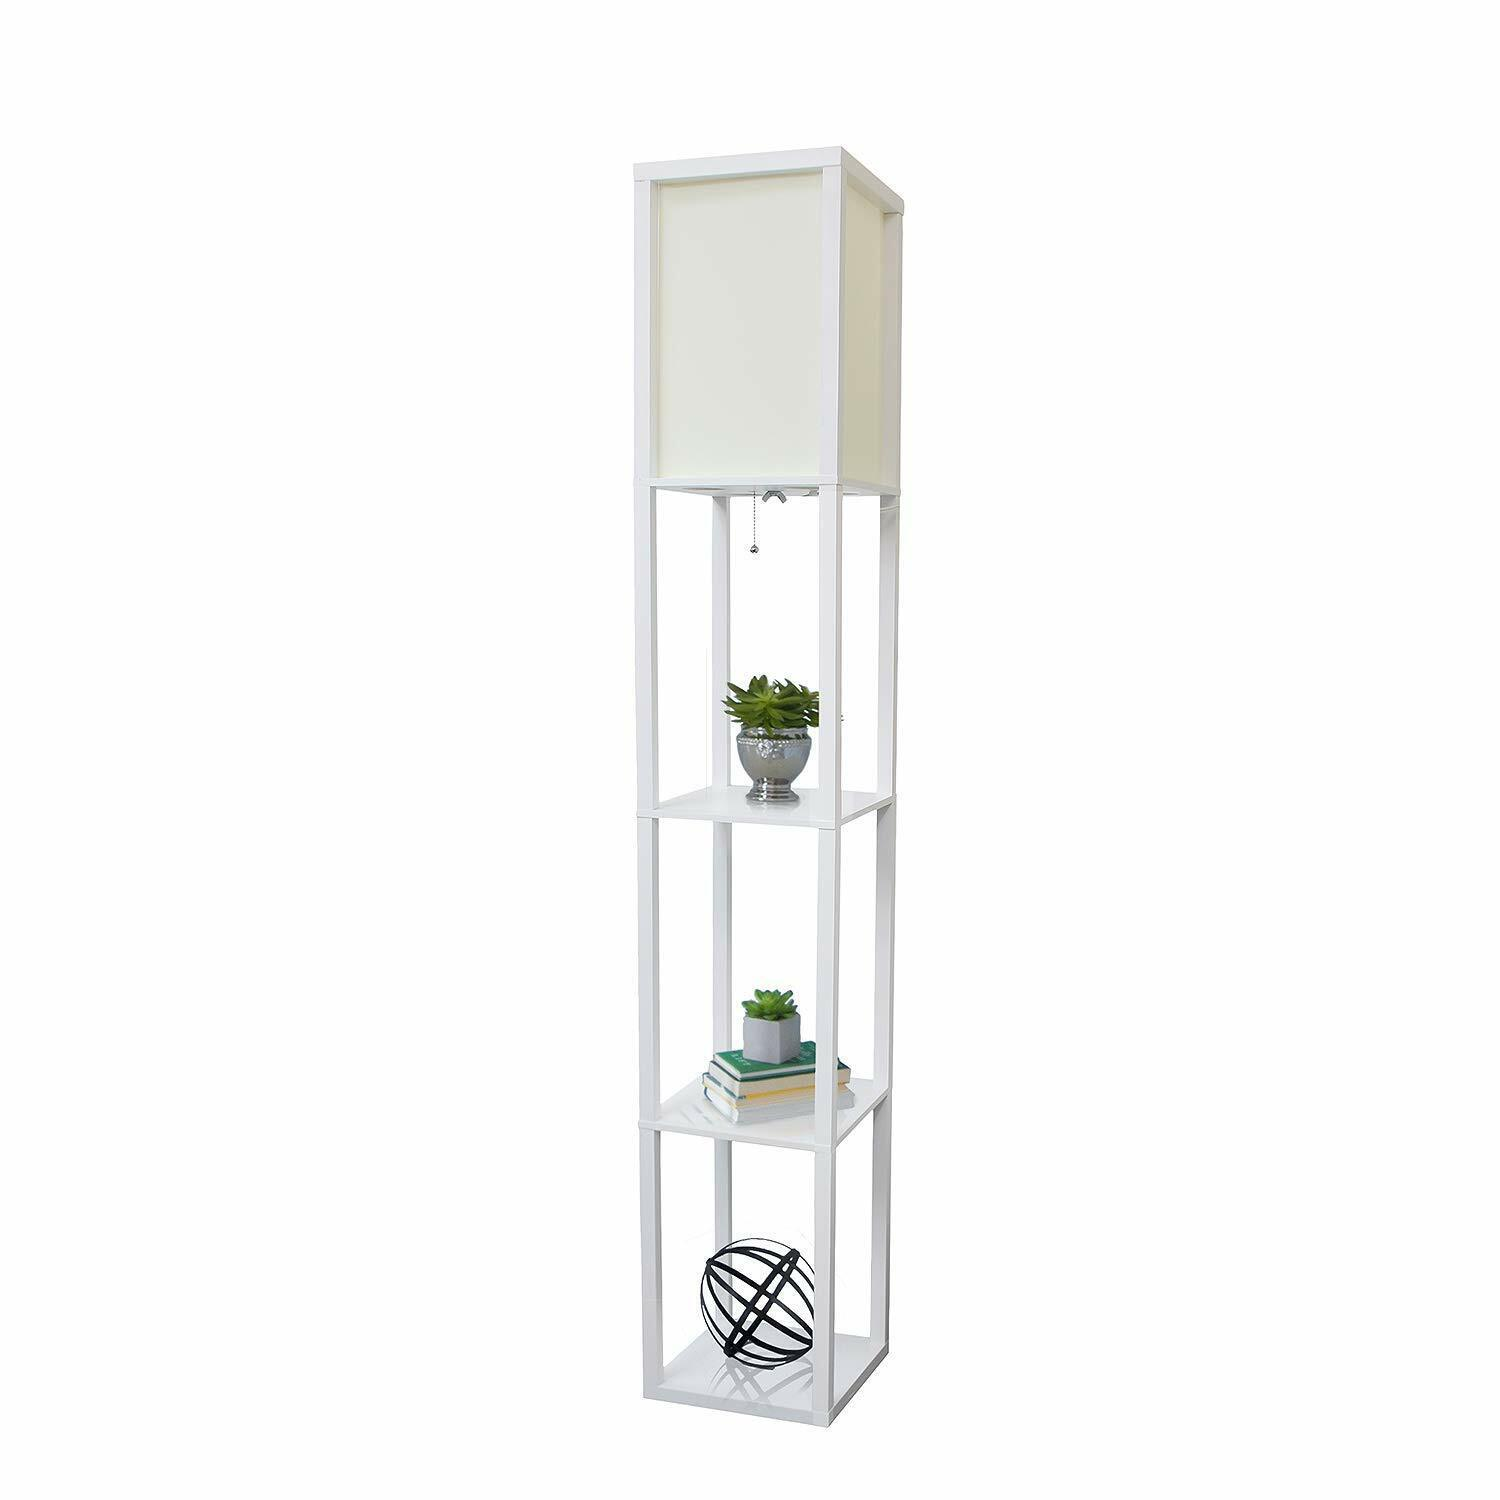 Floor Lamp Etagere Organizer Storage Shelf with Linen Shade Great for Hime Weiß